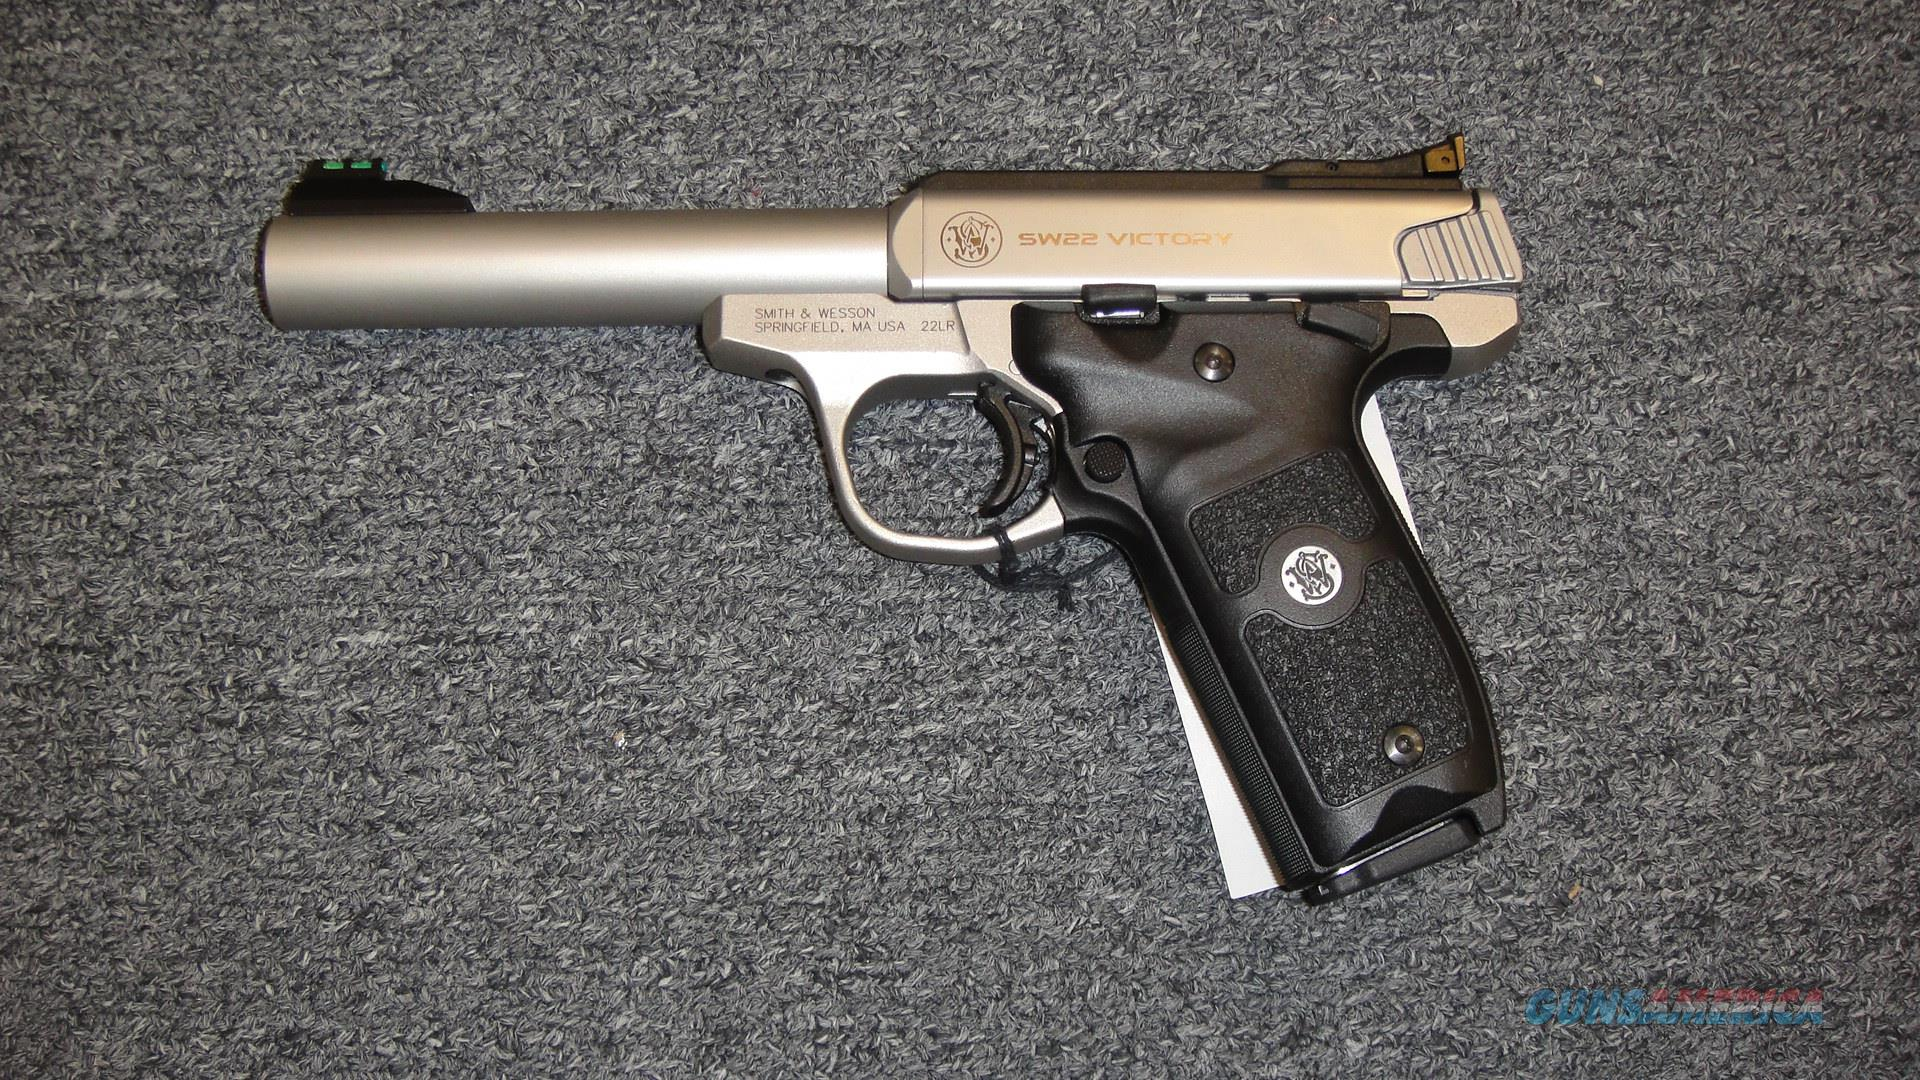 Smith & Wesson SW22 Victory  Guns > Pistols > Smith & Wesson Pistols - Autos > .22 Autos